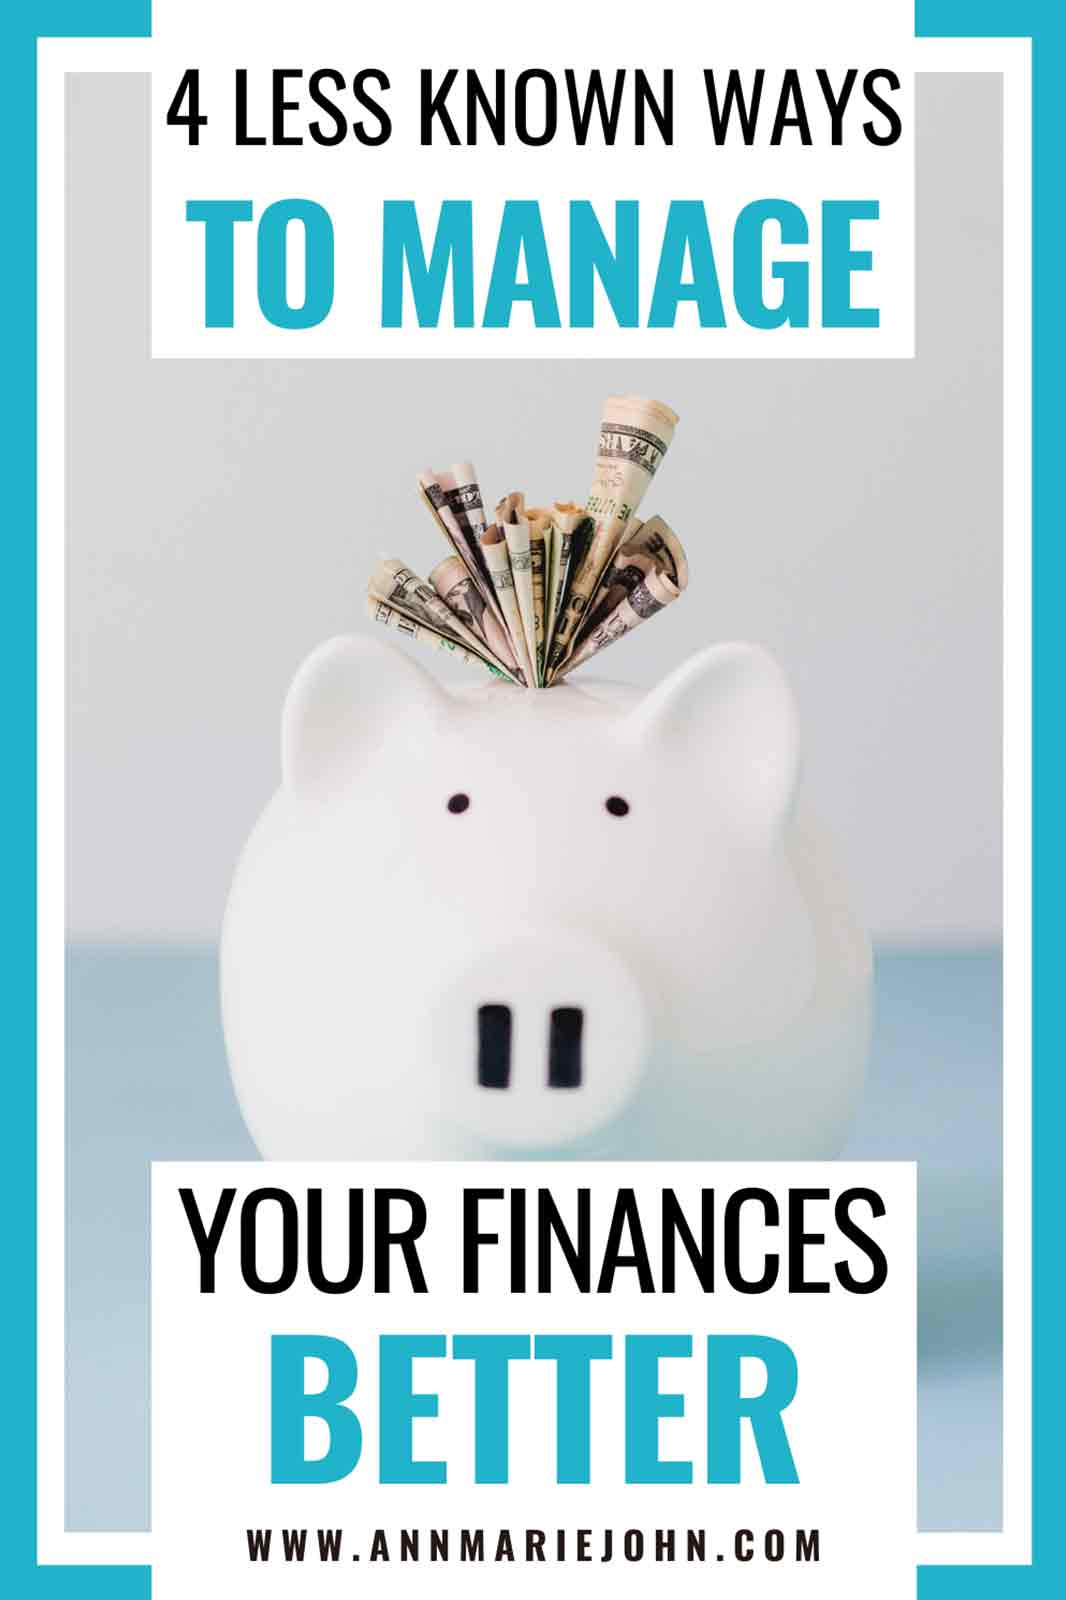 4 Less Known Ways to Manage Your Finances Better